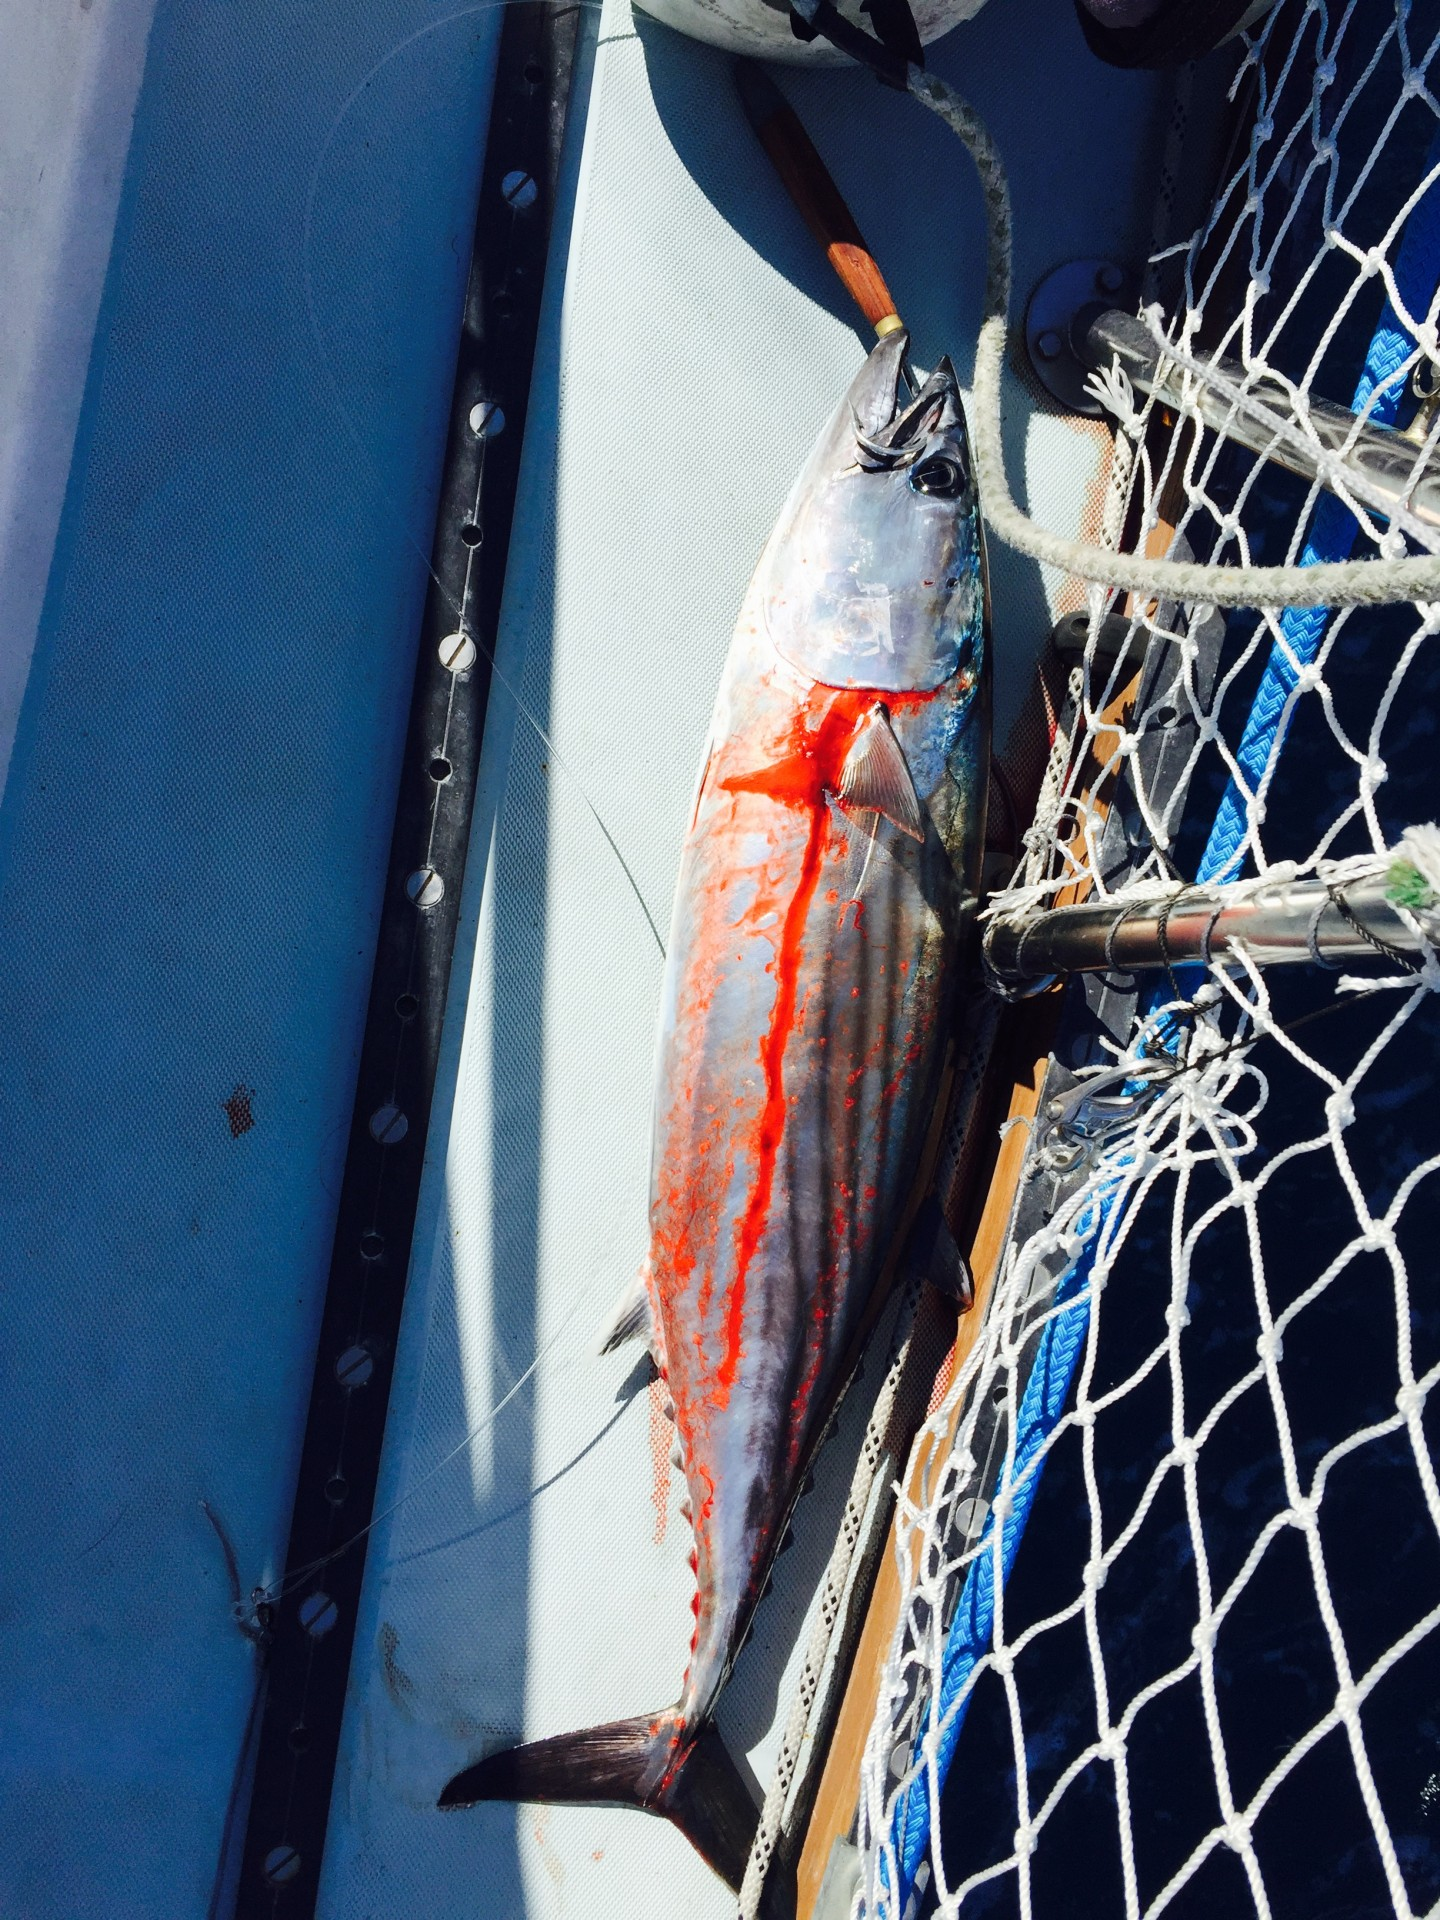 There is an art to quickly killing a fish once on board (this often involves not taking a photo.) There is also the art of gratitude for beauty, life, and food.